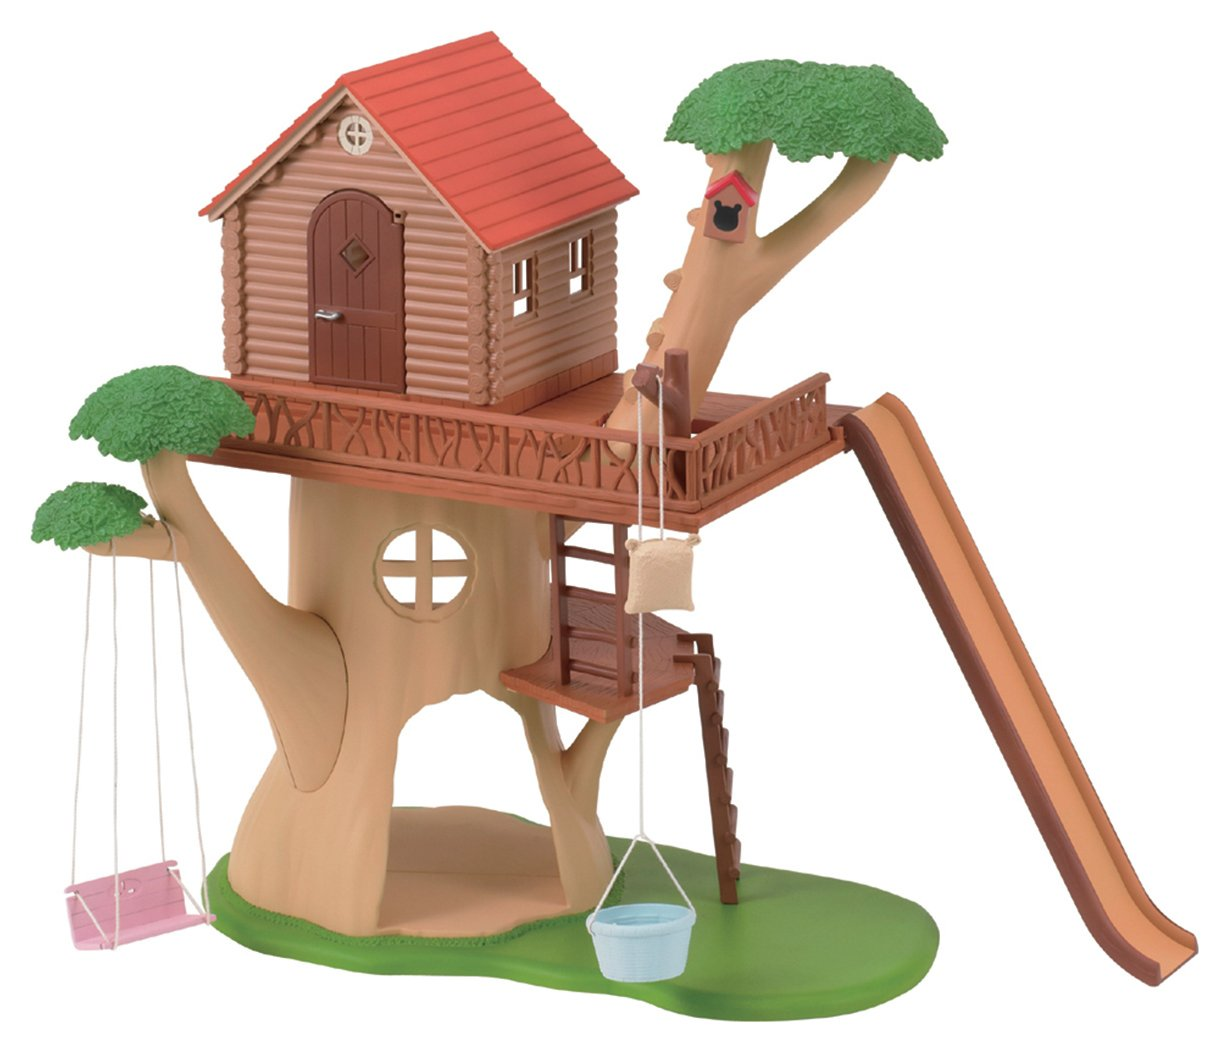 Sylvanian Families Bedroom Furniture Set Buy Sylvanian Families Animal Playsets And Collectables At Argos